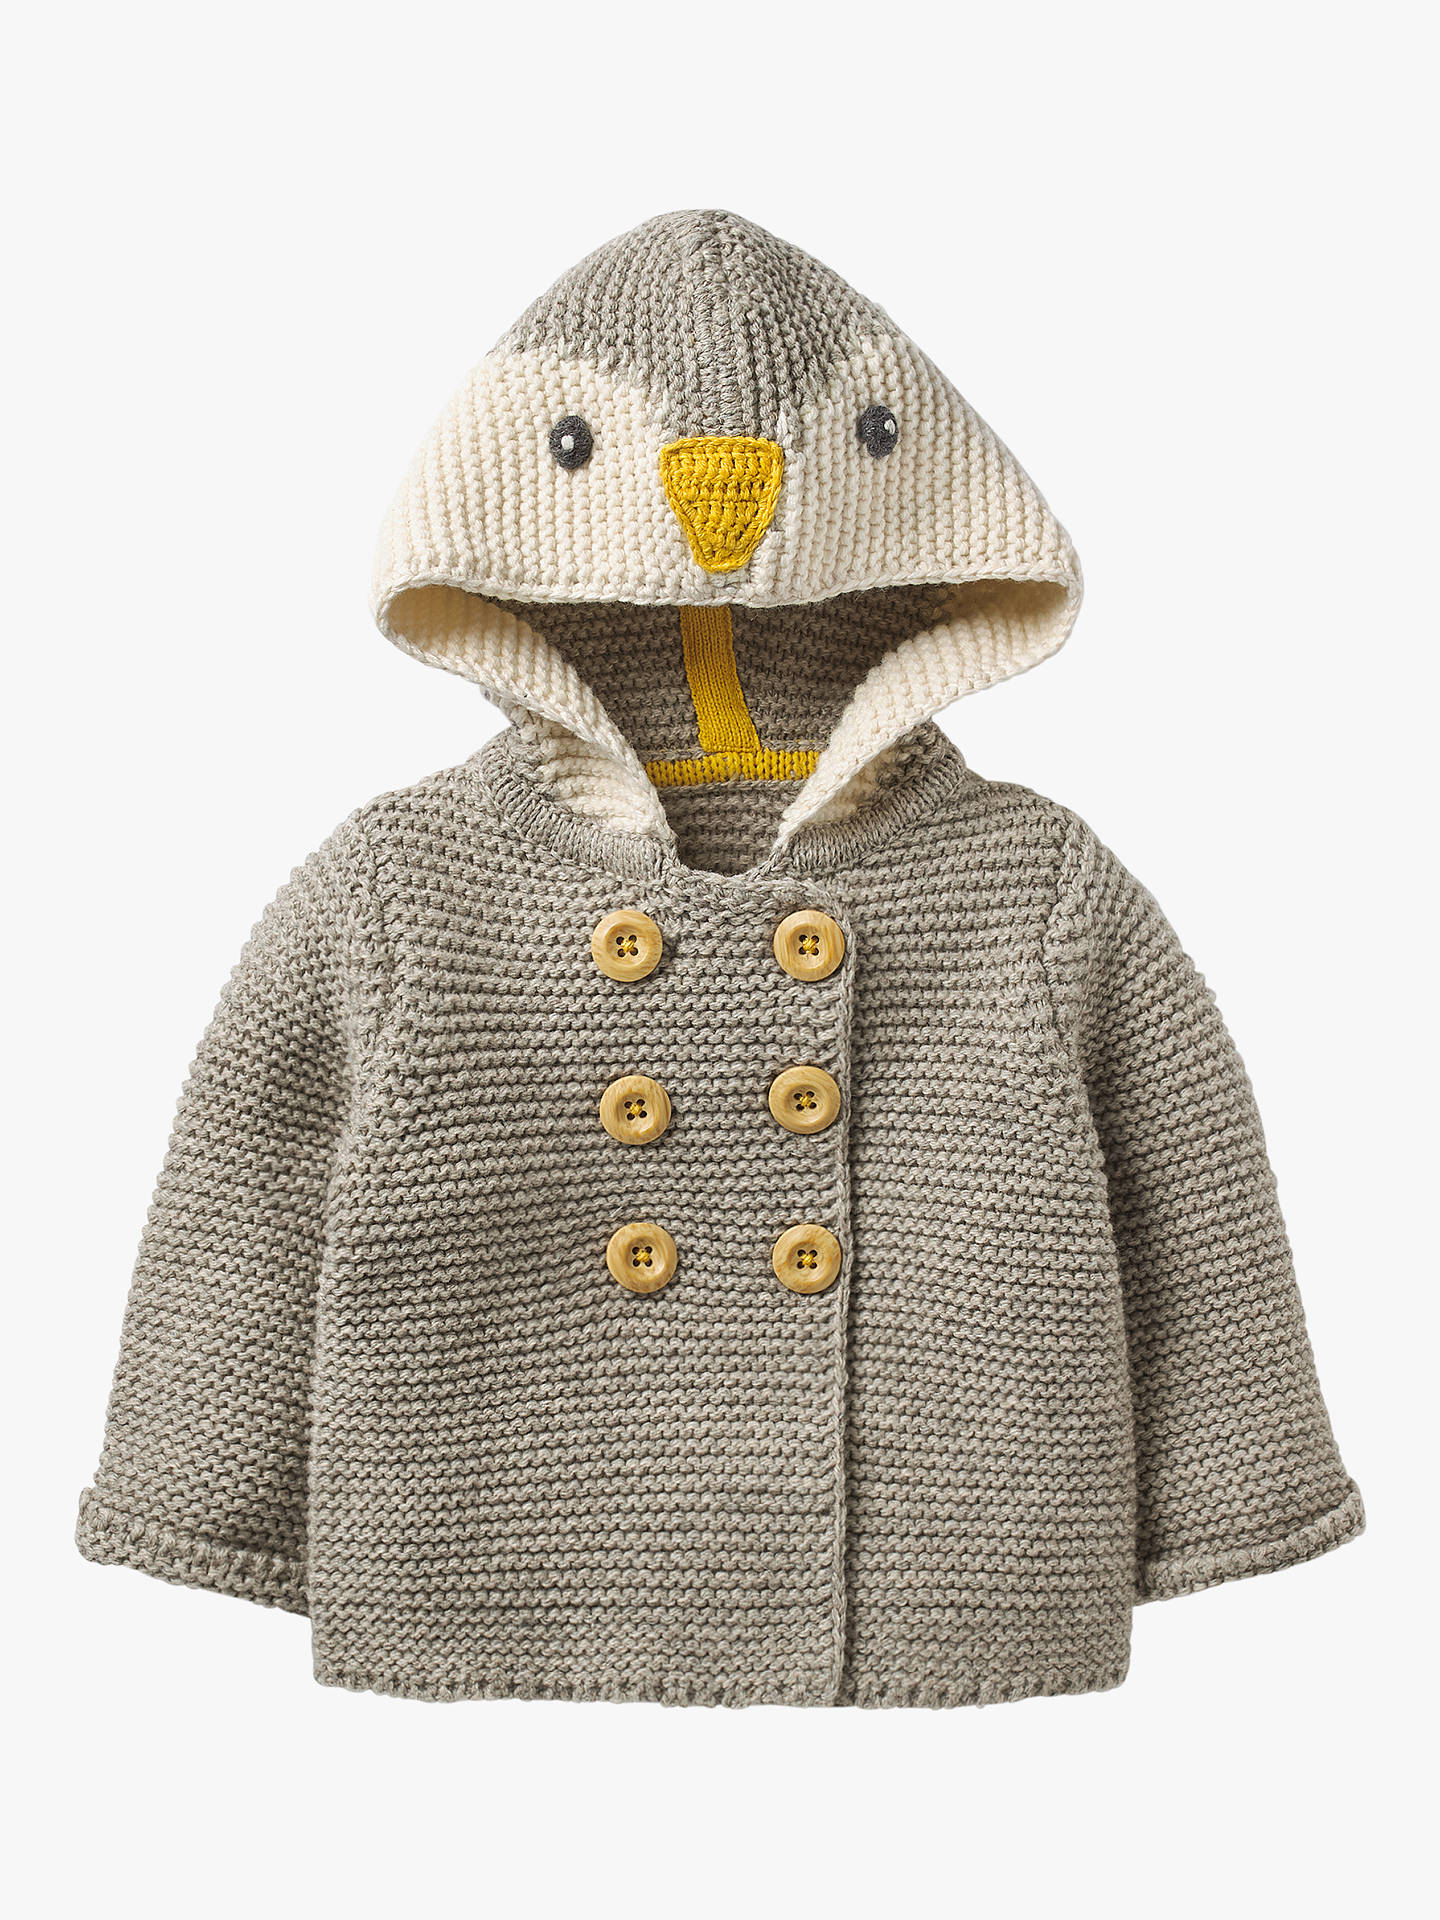 34eb9890f3b1 Mini Boden Baby Penguin Knitted Jacket